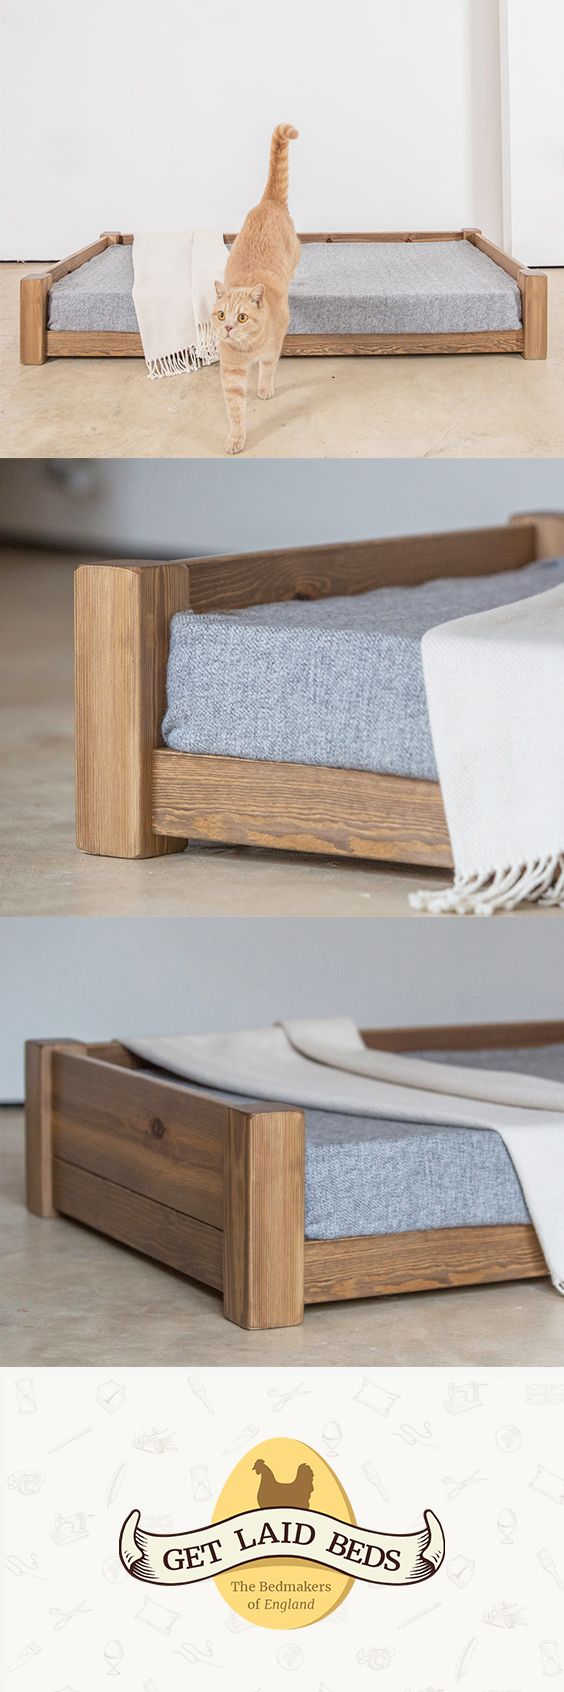 The Perfect Pet Bed in 2020 Wooden pet bed, Pet bed